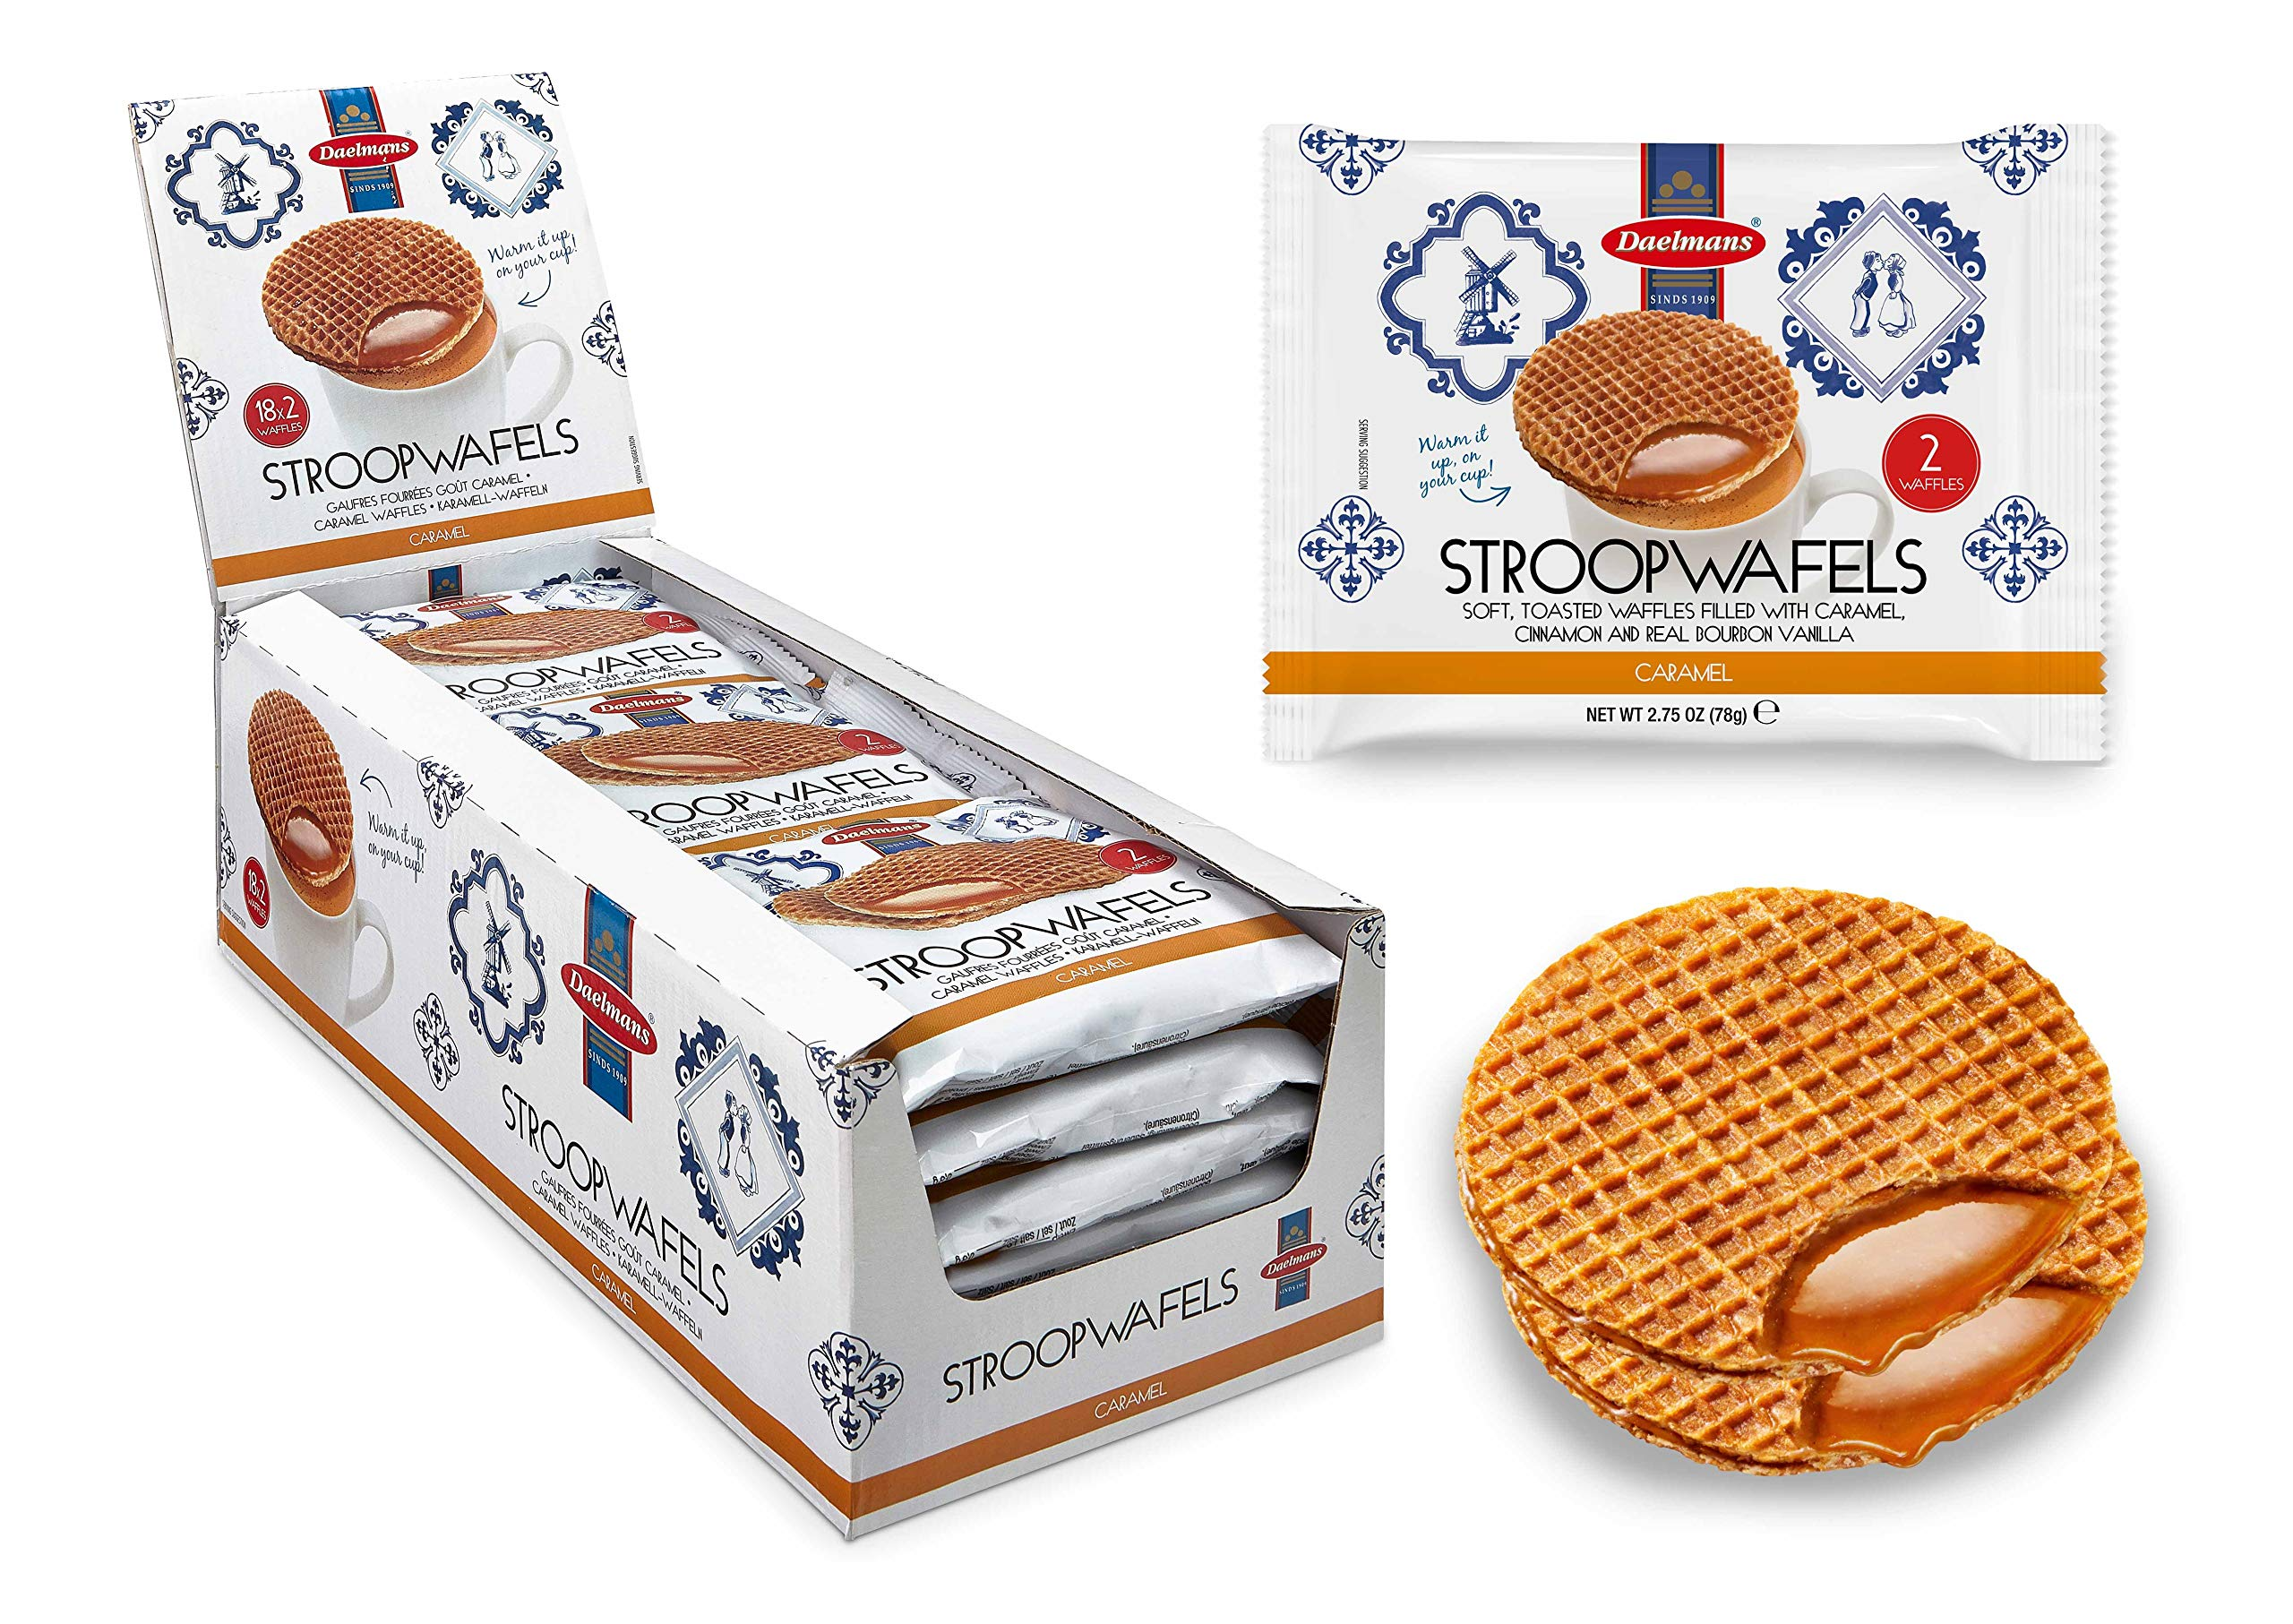 DAELMANS Stroopwafels, Dutch Waffles Soft Toasted, Caramel, Office Snack, Jumbo Size, Kosher Dairy, Authentic Made In Holland, 18 2-pack Stroopwafels Per Box, 2.75oz each